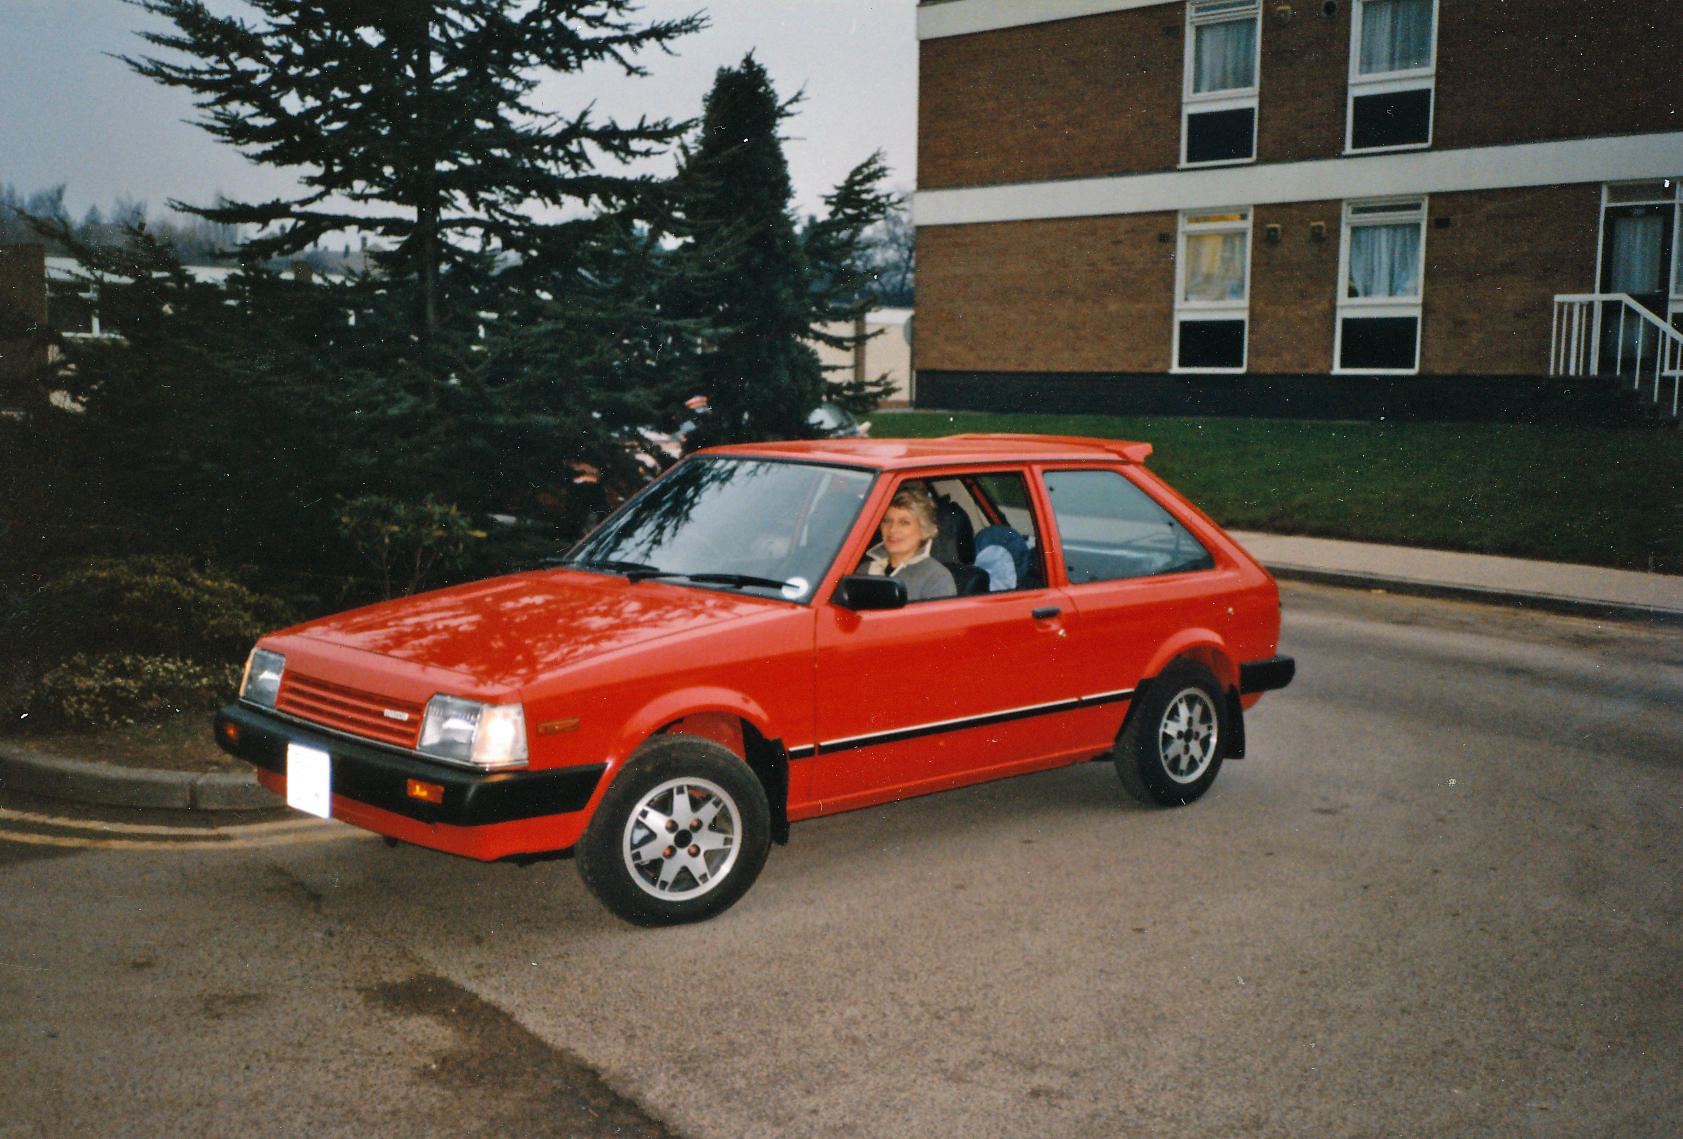 Mazda 323 - Louise Comes Home - March 1985 | Flickr - Photo Sharing!